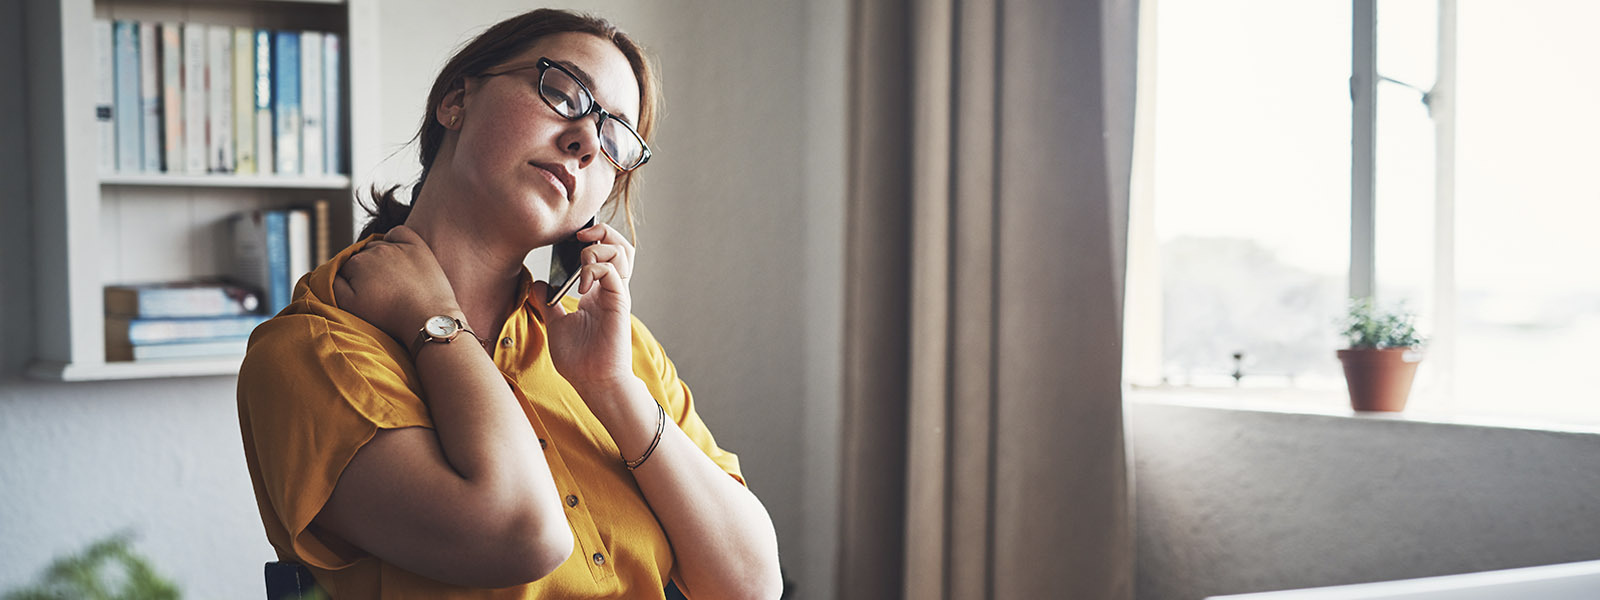 Image of woman on phone